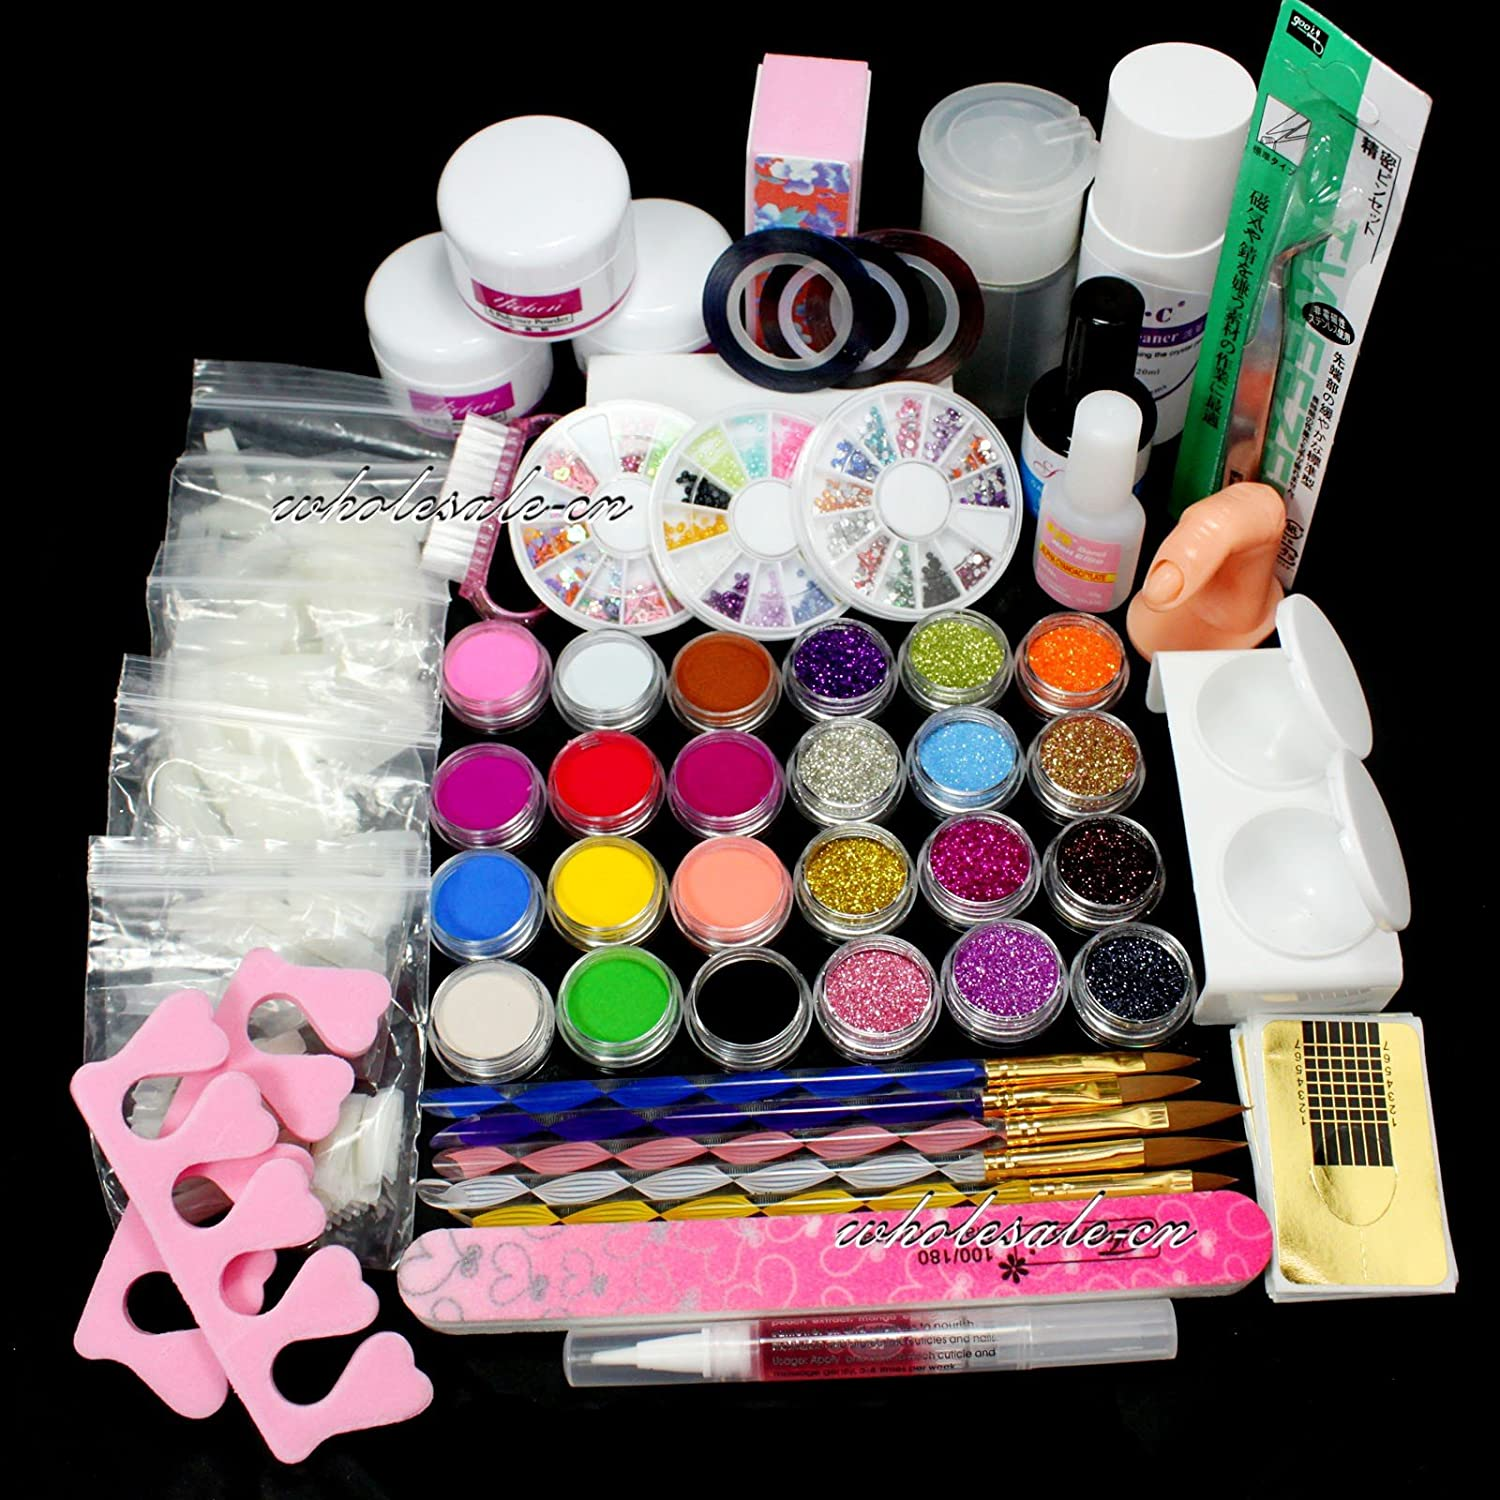 Buy Ry Full Nail Art Set Acrylic Glitter Powder Primer Tip Brush ...